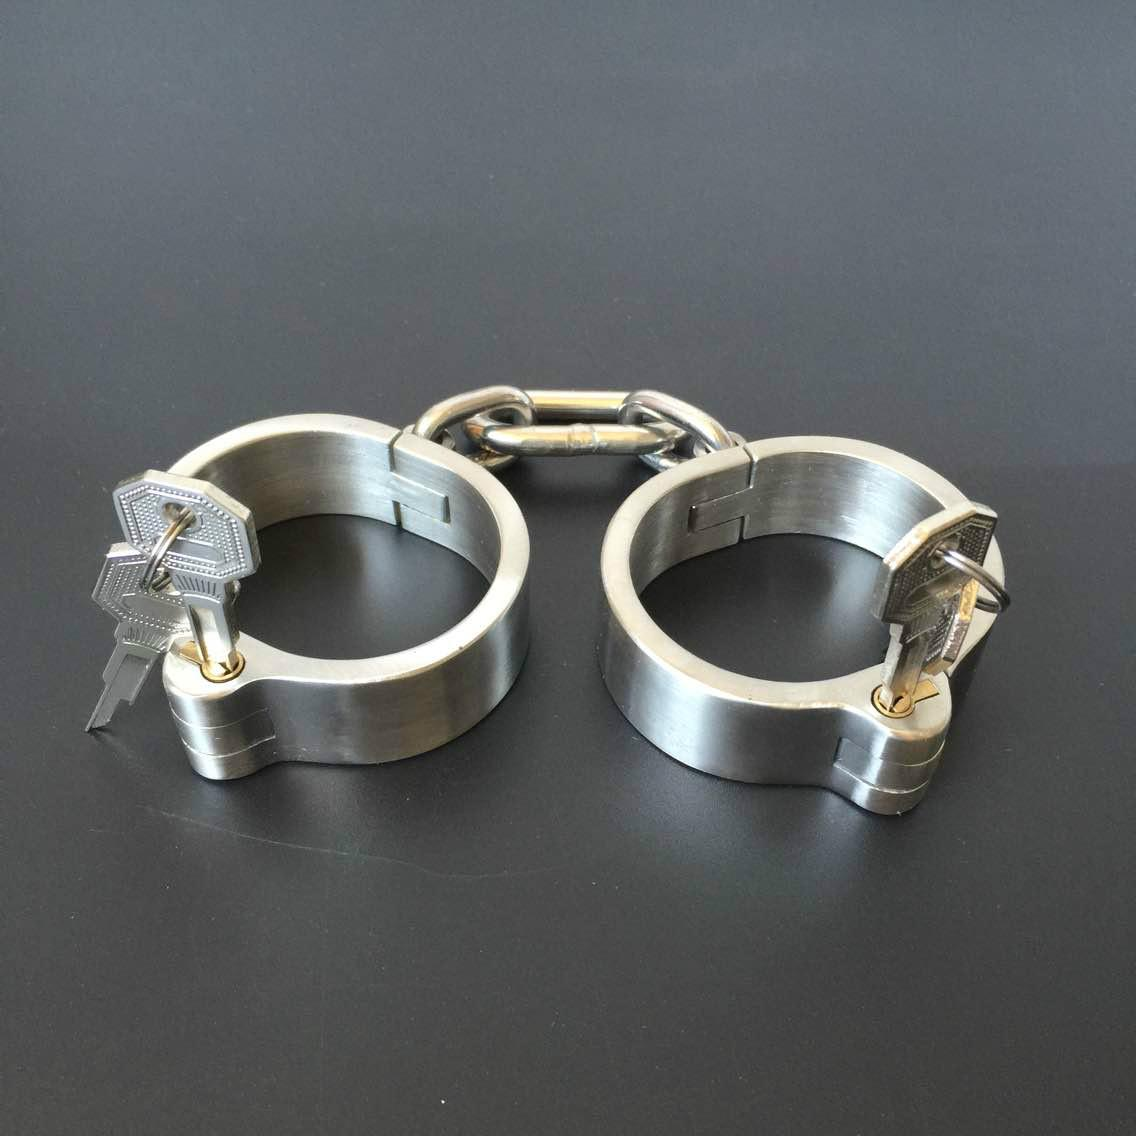 Unisex Stainless Steel Handcurffs Ankle Cuffs Collar Bondage Gear BDSM Toys And Sex Toys